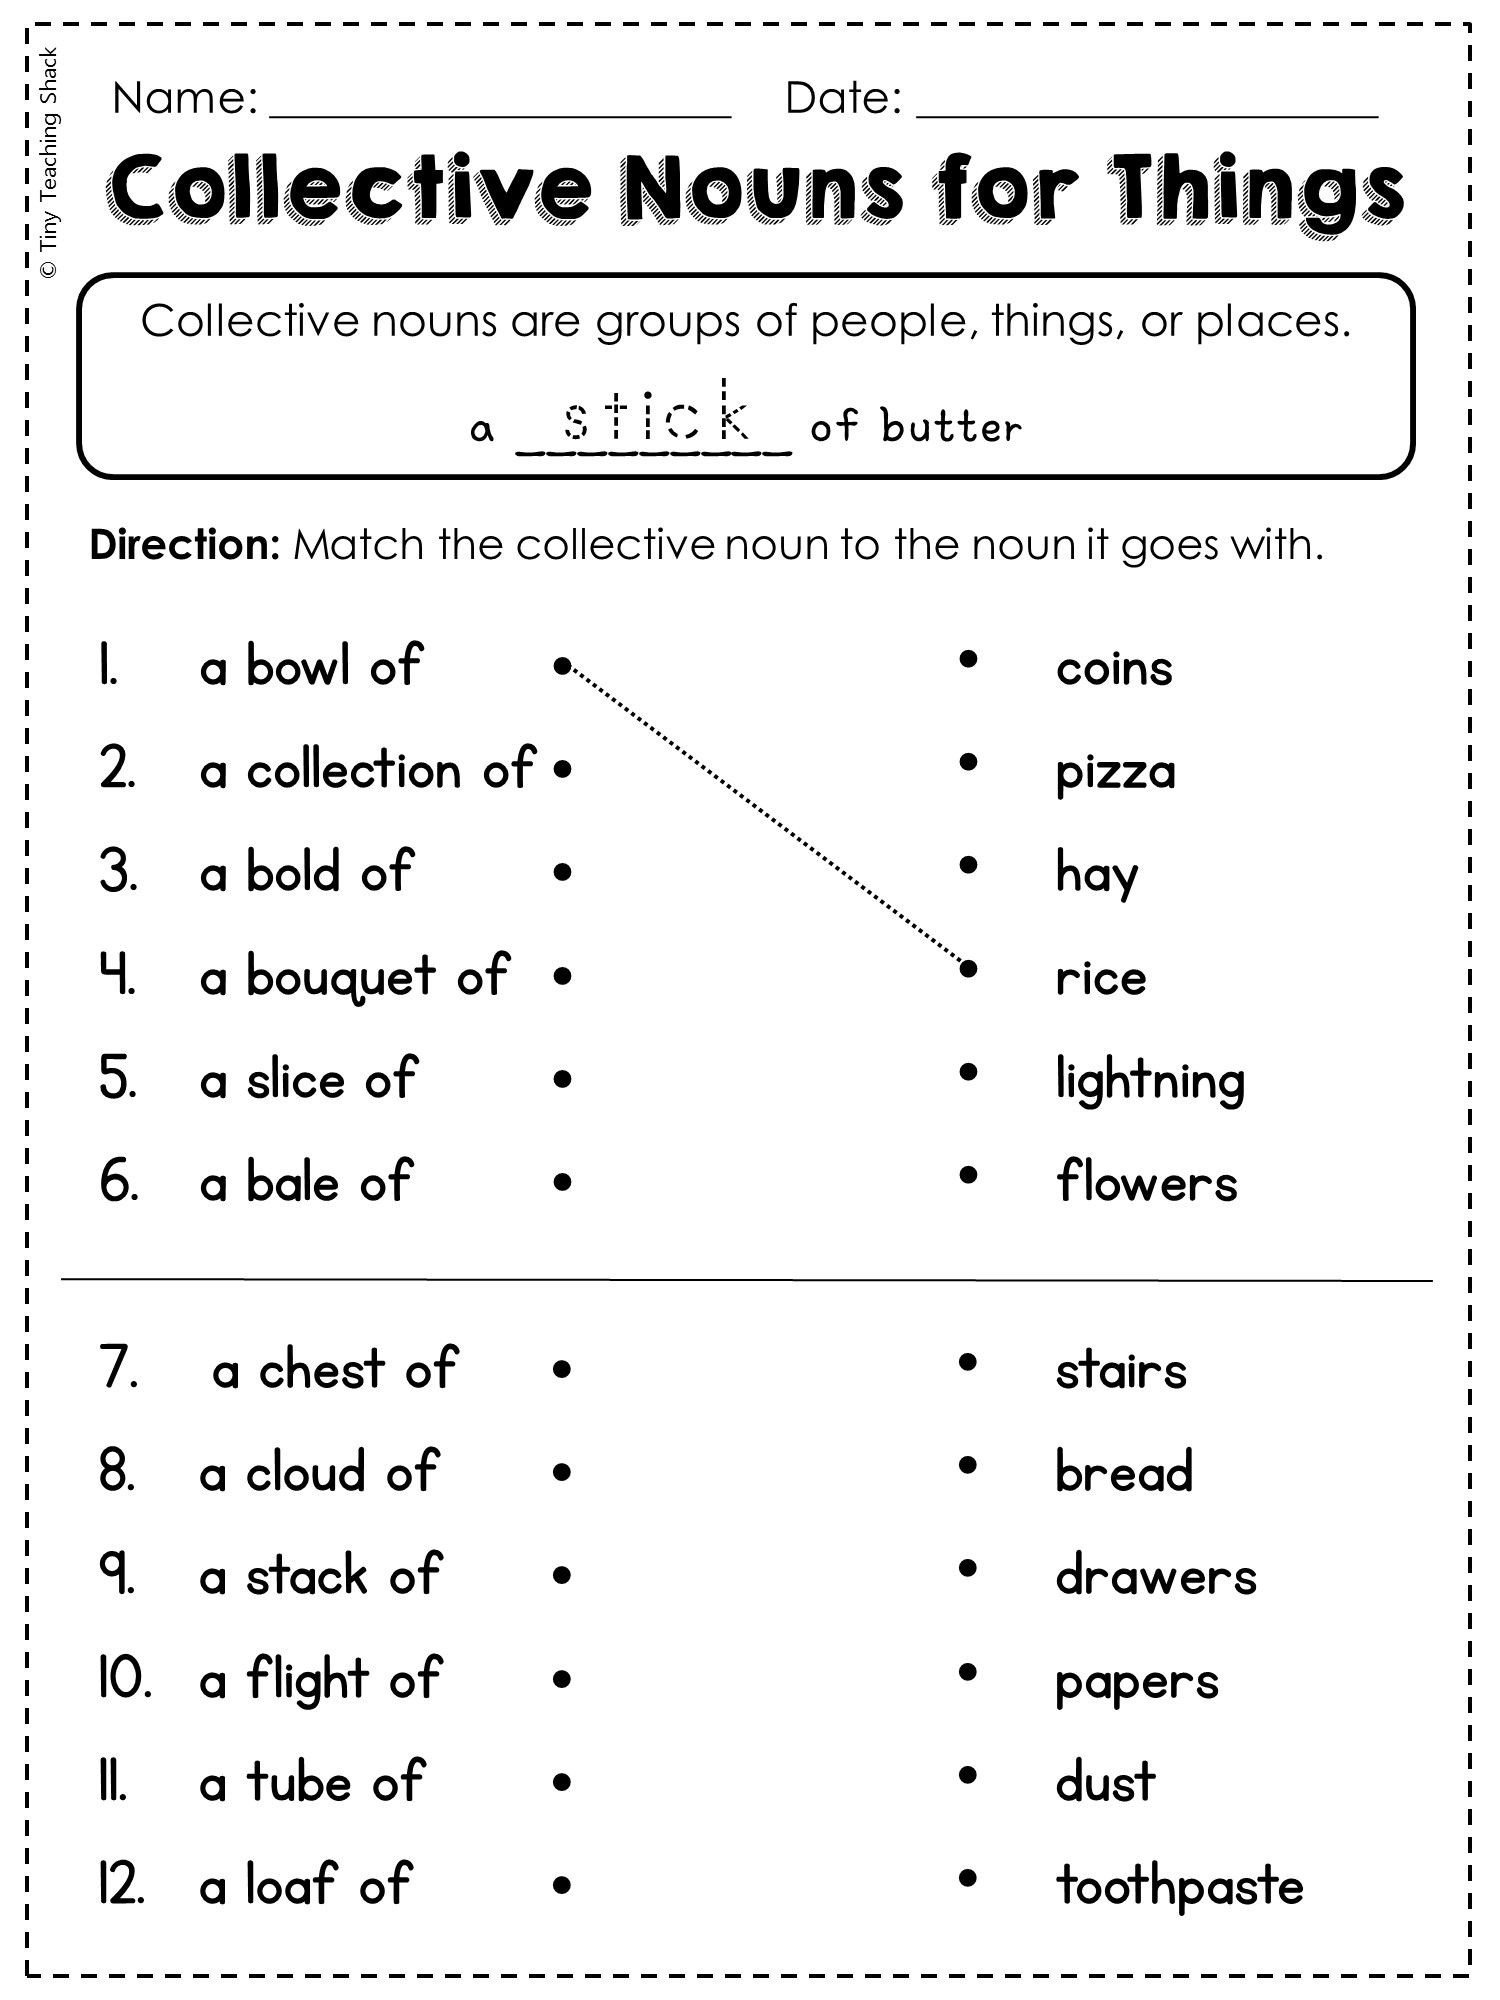 Free Proper Noun Worksheets 2nd Grade Language Arts and Grammar Practice Sheets Freebie